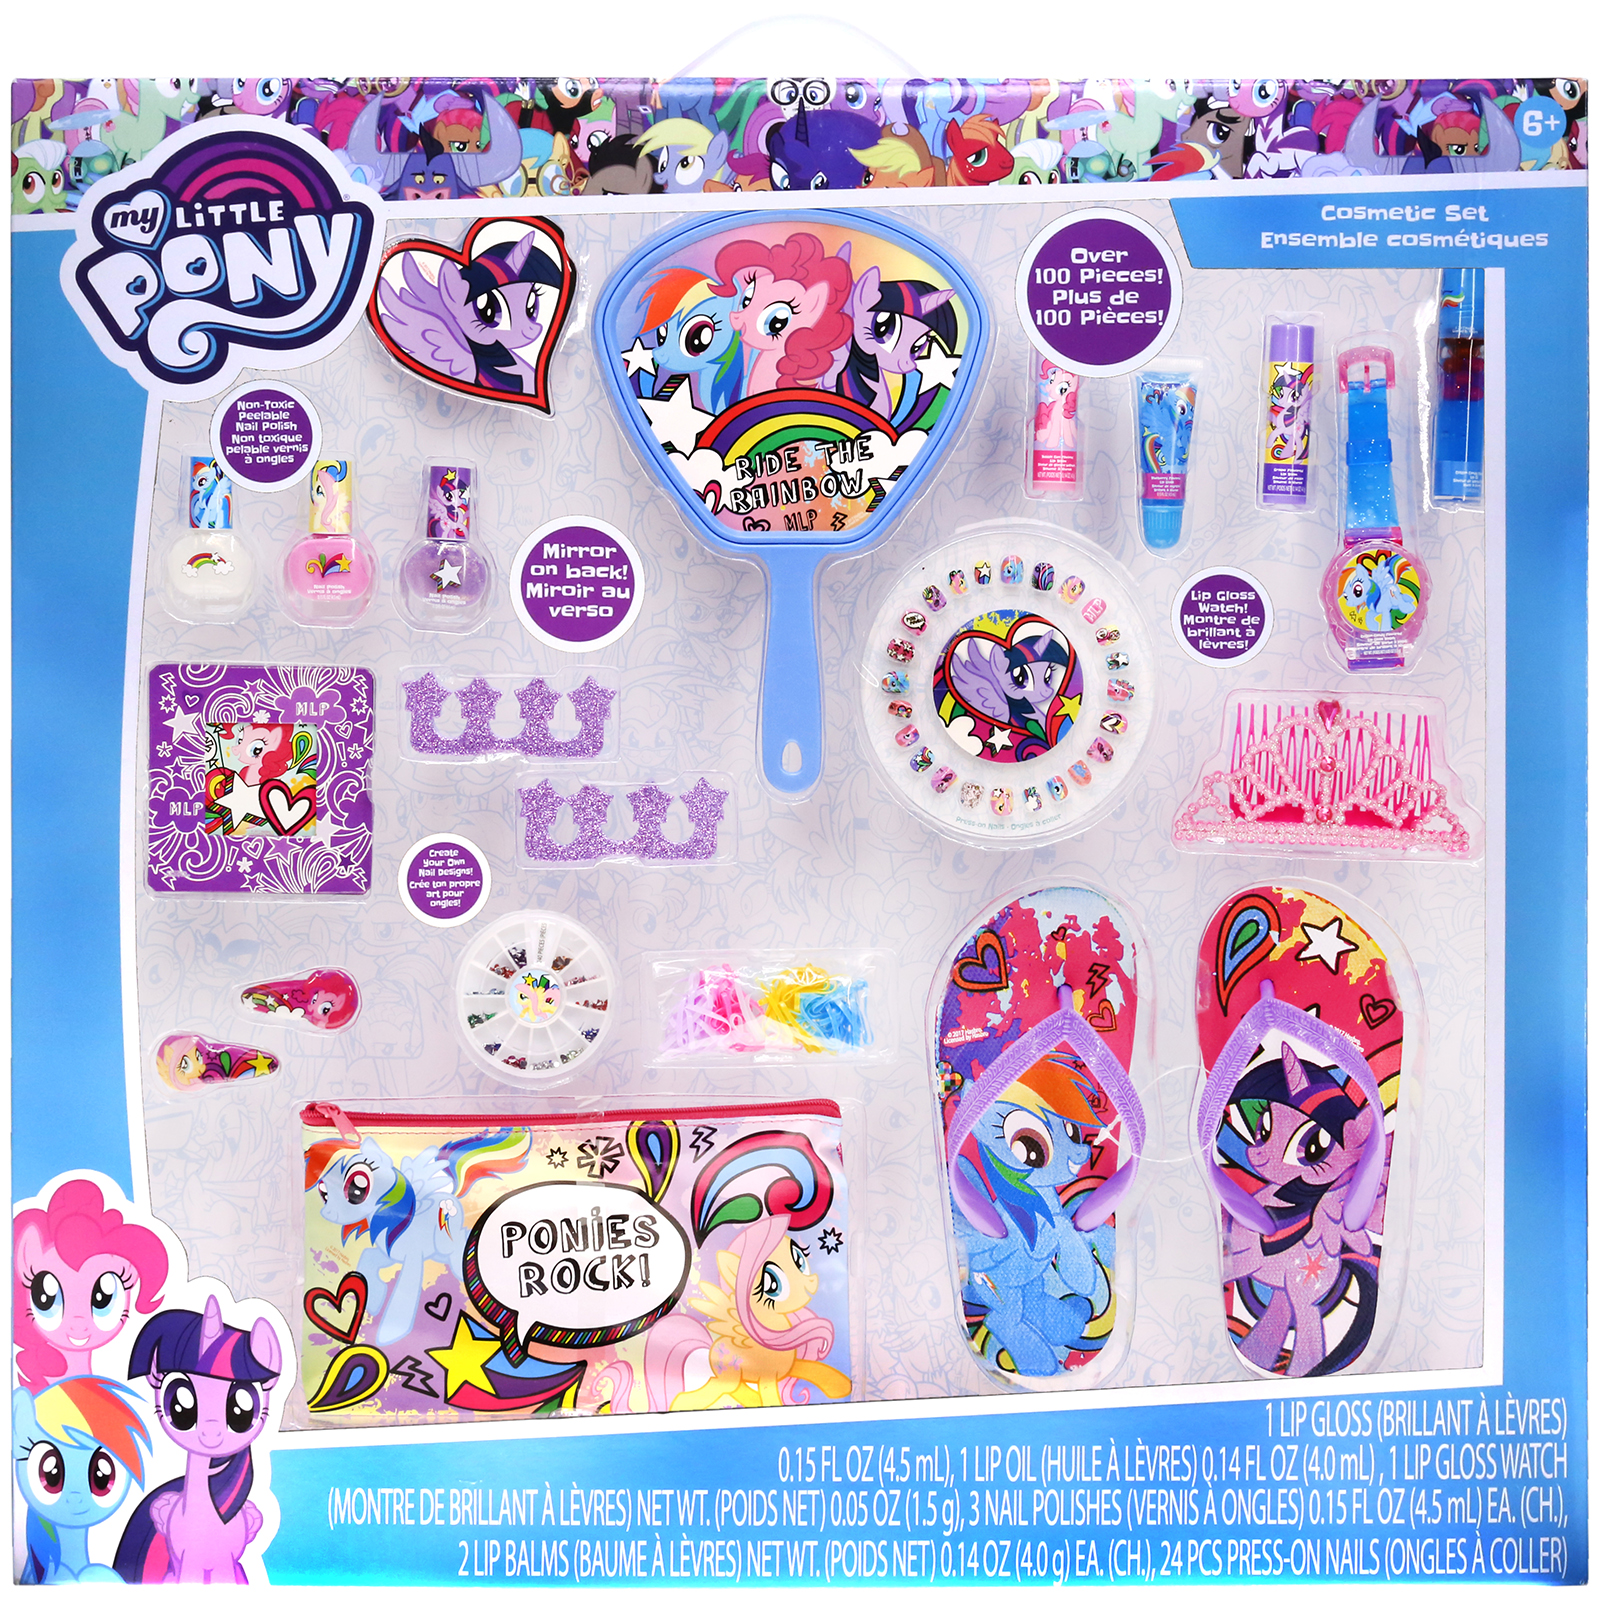 My Little Pony Mega Cosmetic Set